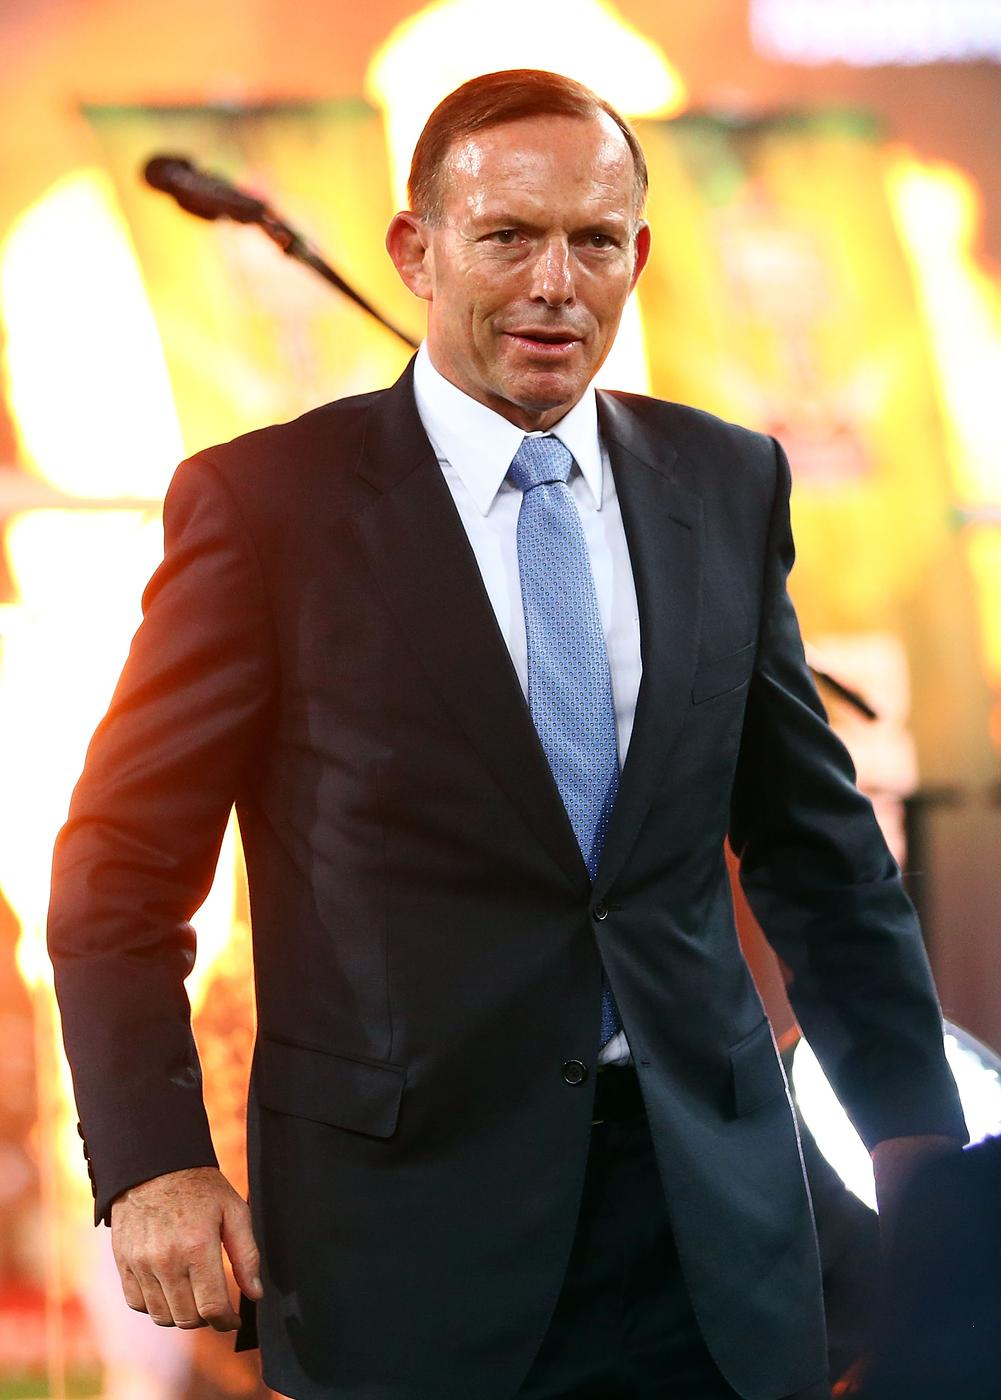 Aussie PM Tony Abbot gets booed at National Rugby League Grand final